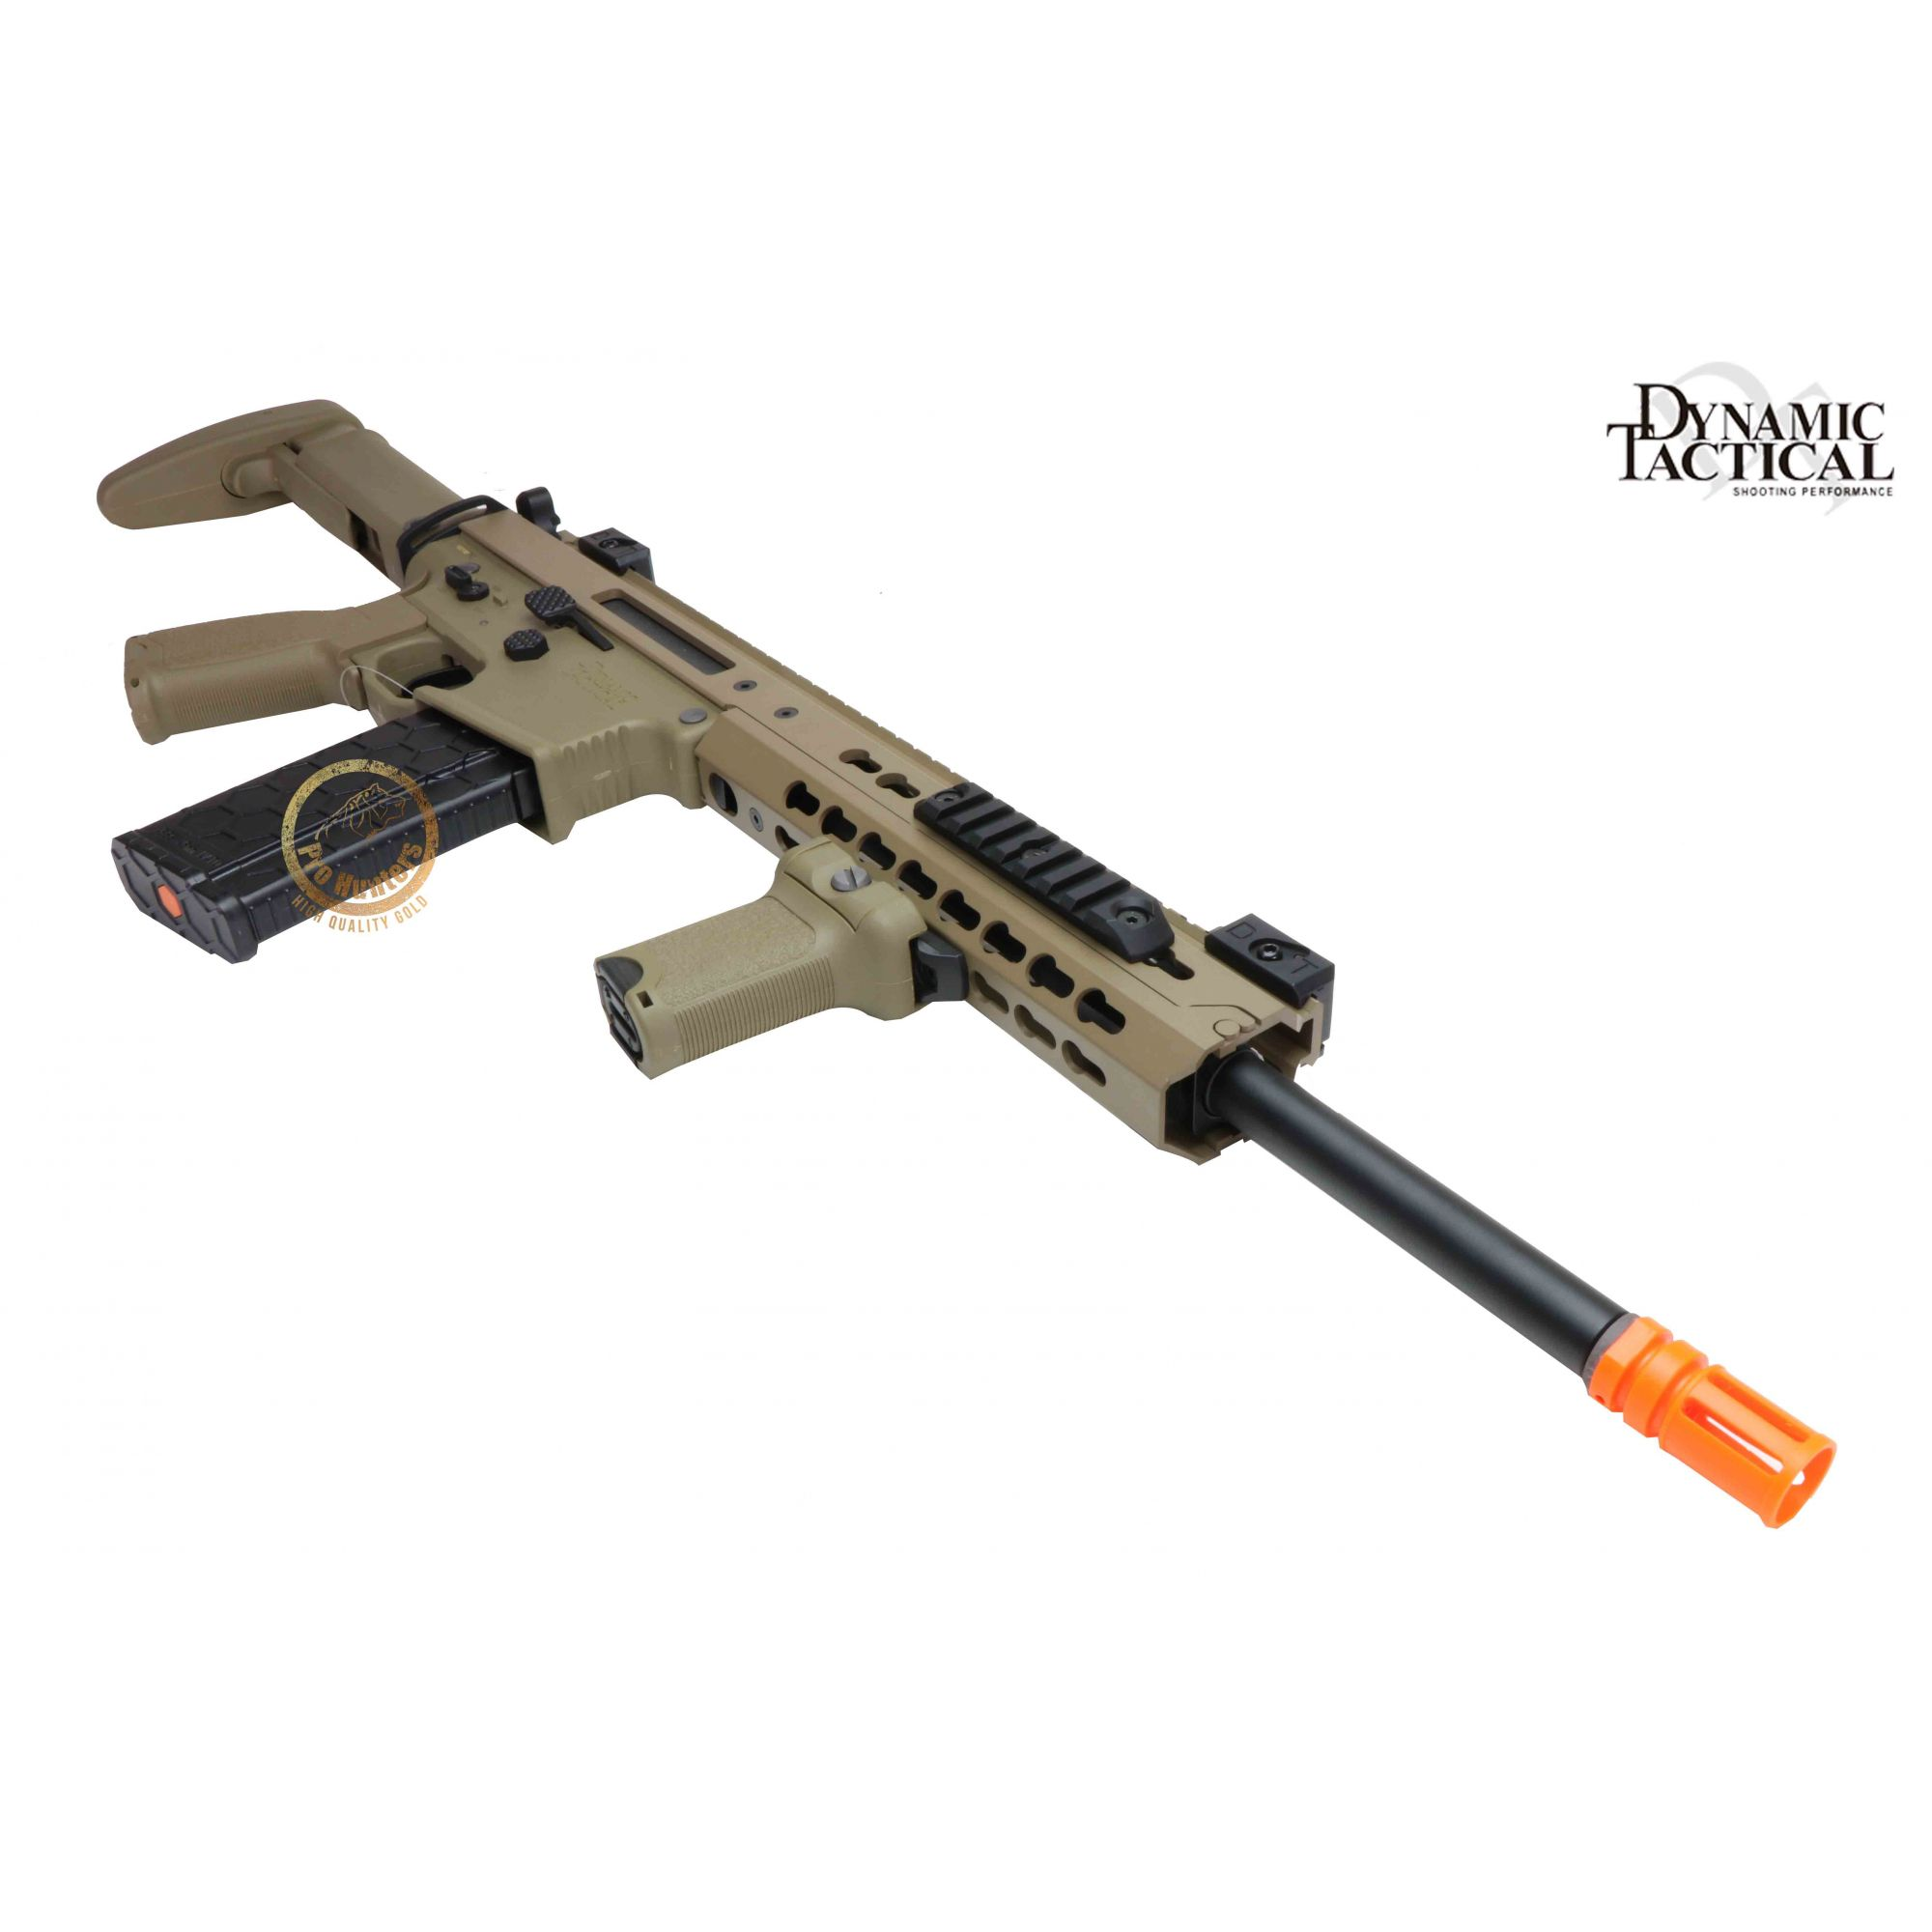 Rifle Airsoft Dytac Warlord Carbine Type A - Magpul Dark Earth - FRETE GRÁTIS